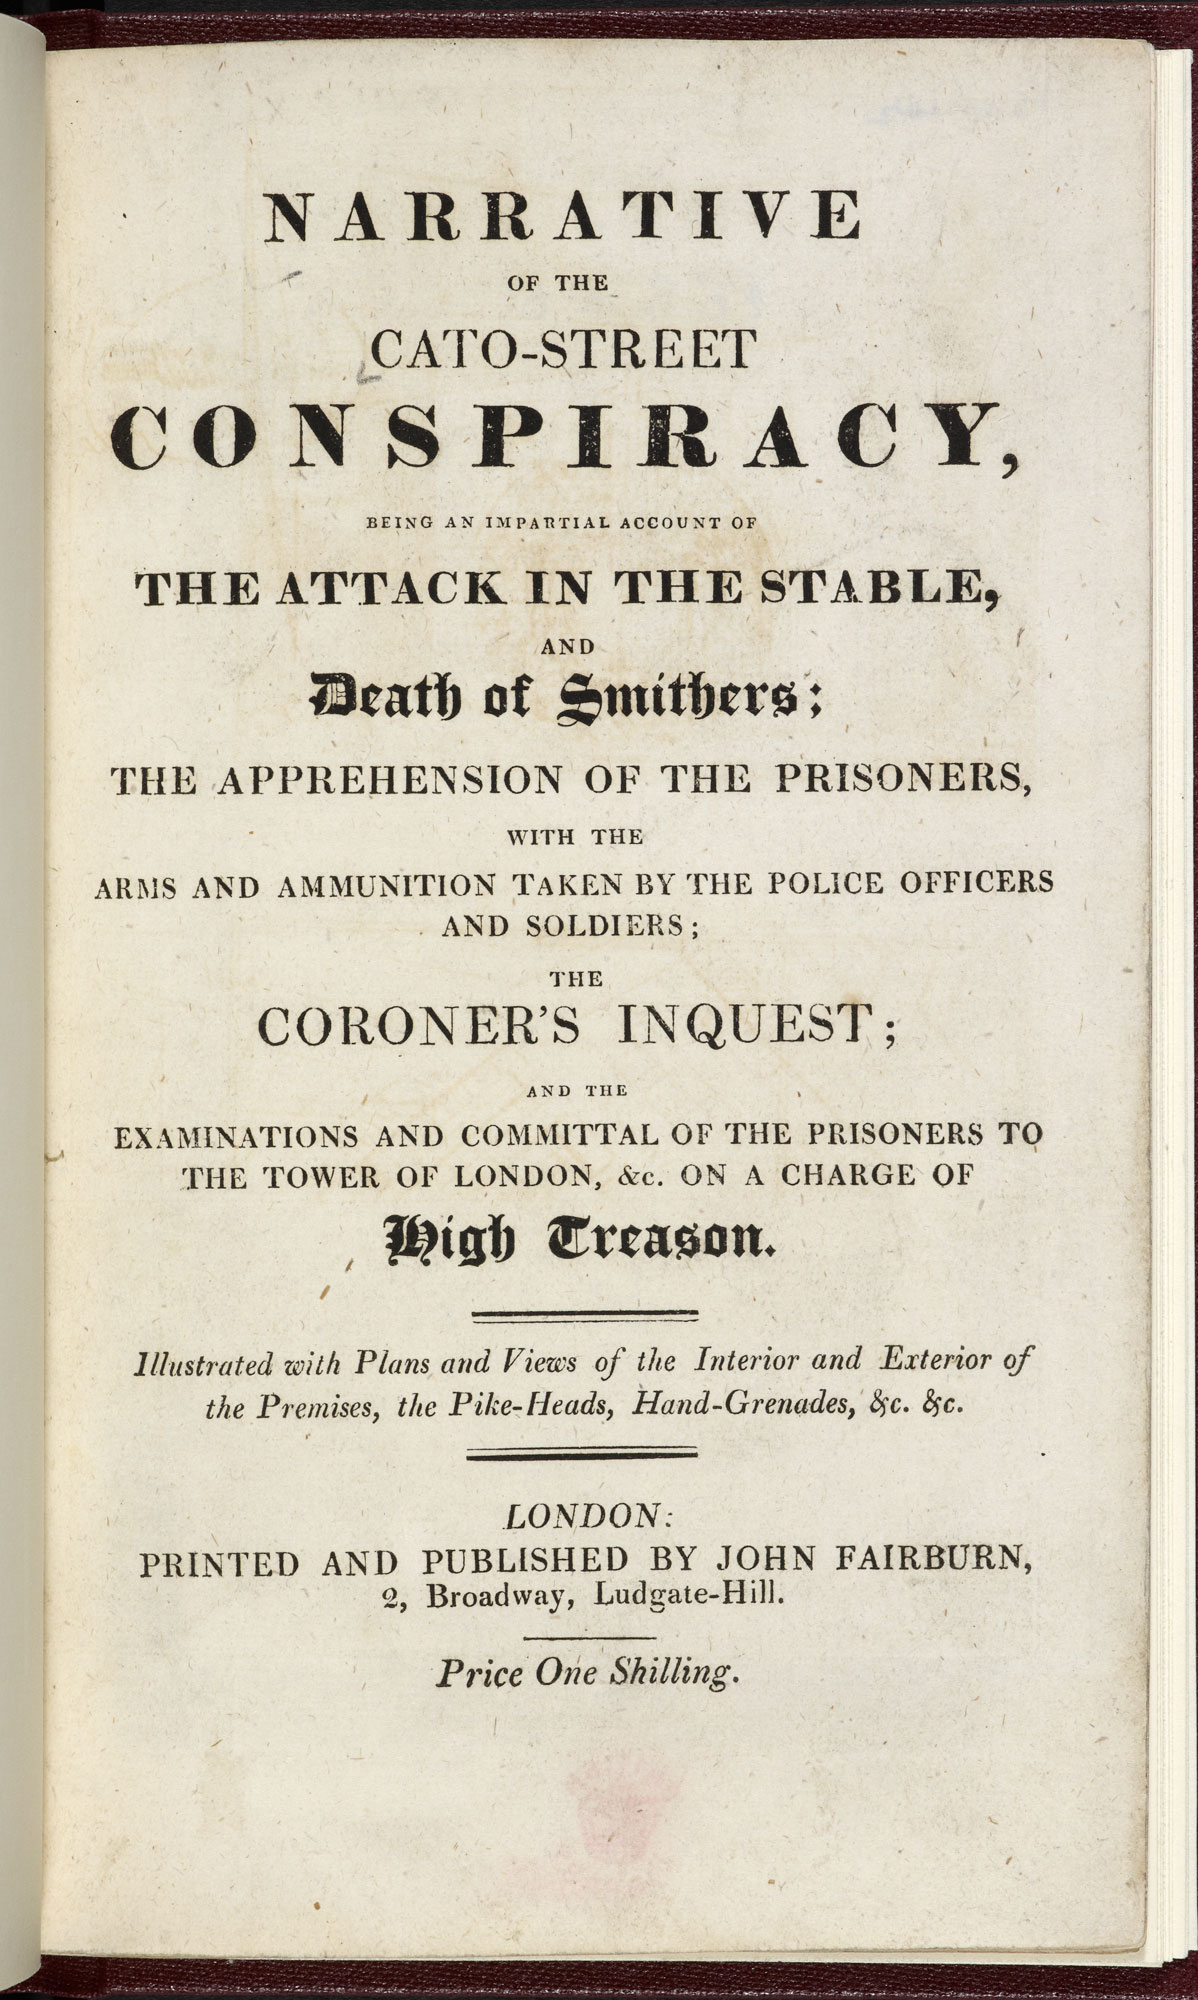 Narrative of the Cato-Street Conspiracy [page: title page]